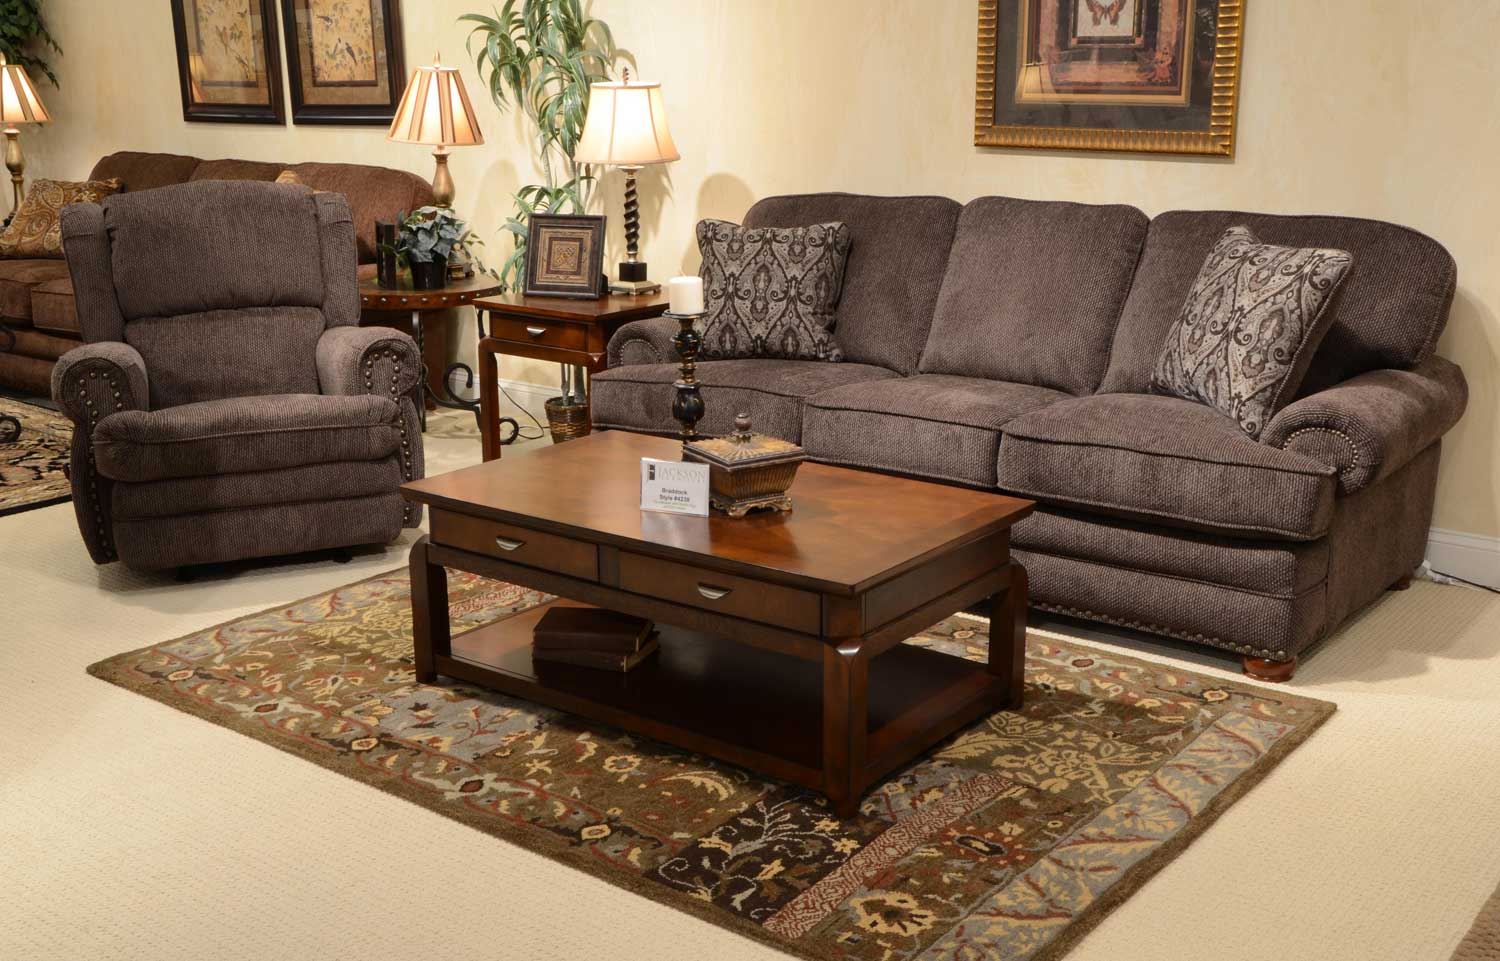 Jackson Braddock Sofa Set Metal Jf 4238 Sofa Set Metal